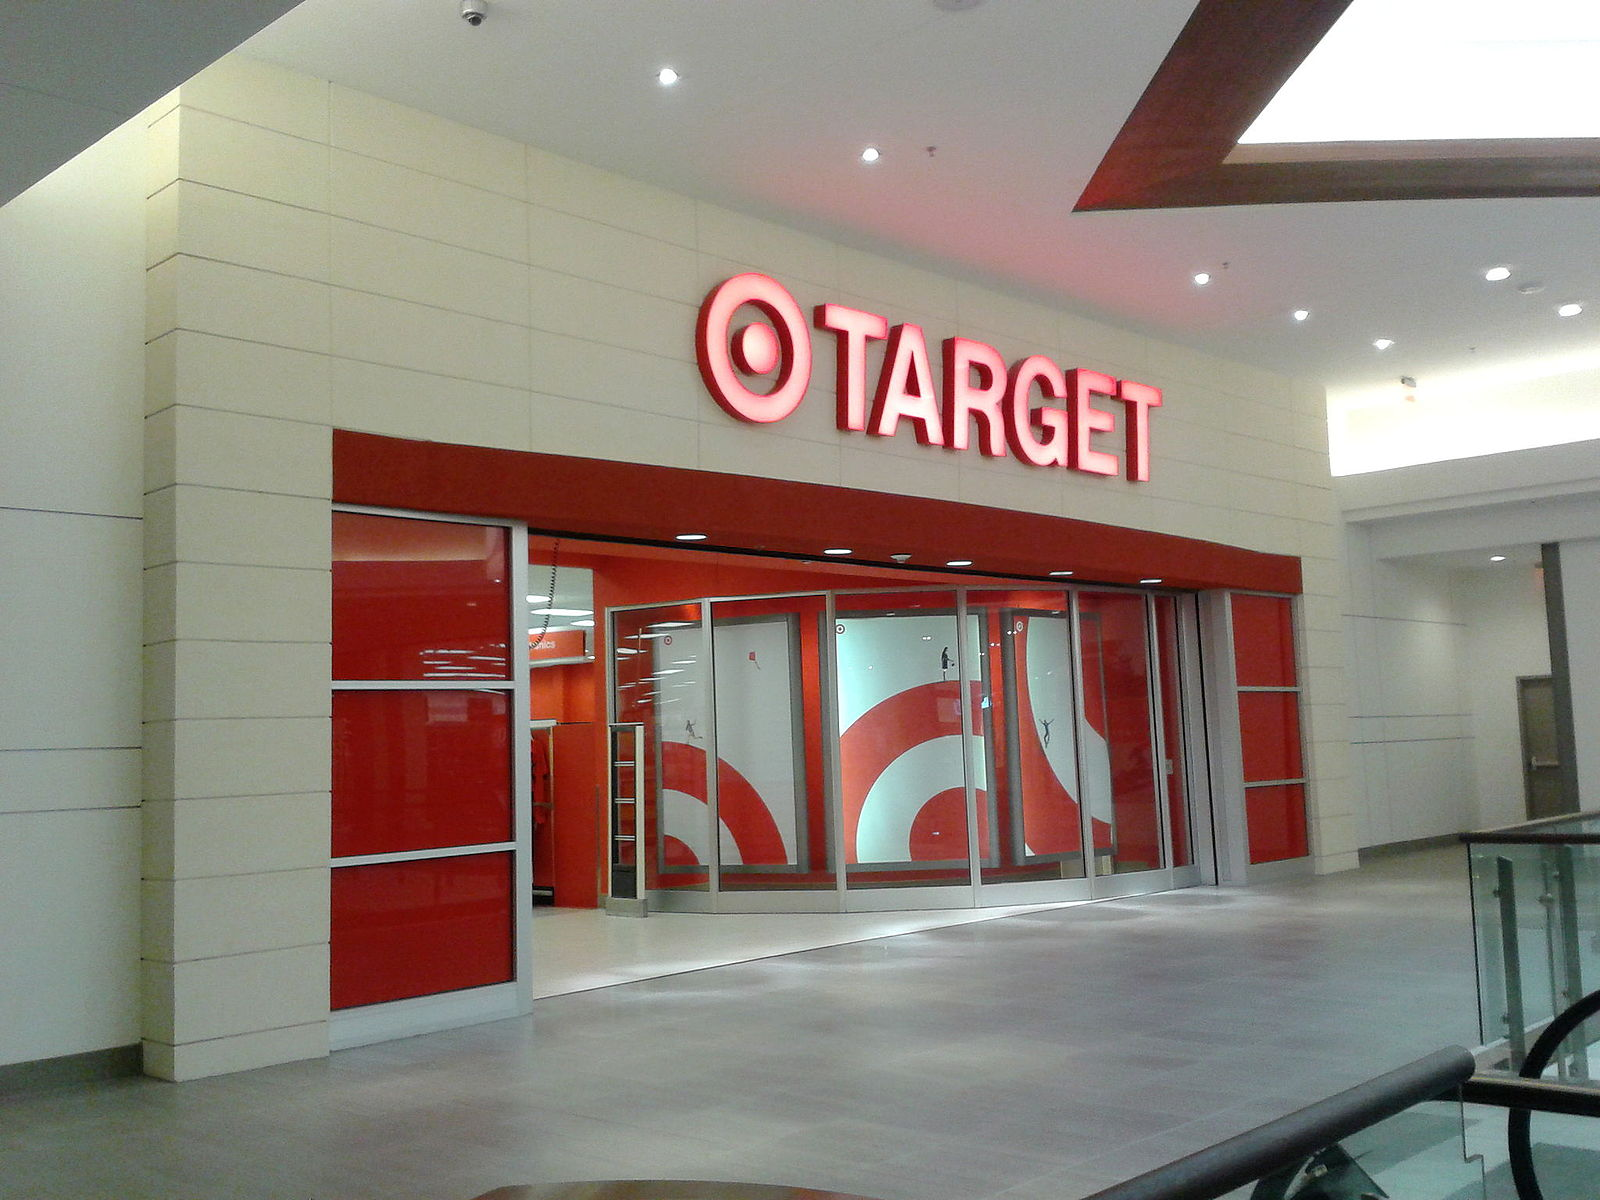 Target Pledges to End Gender-Based Signs in Toy Aisles